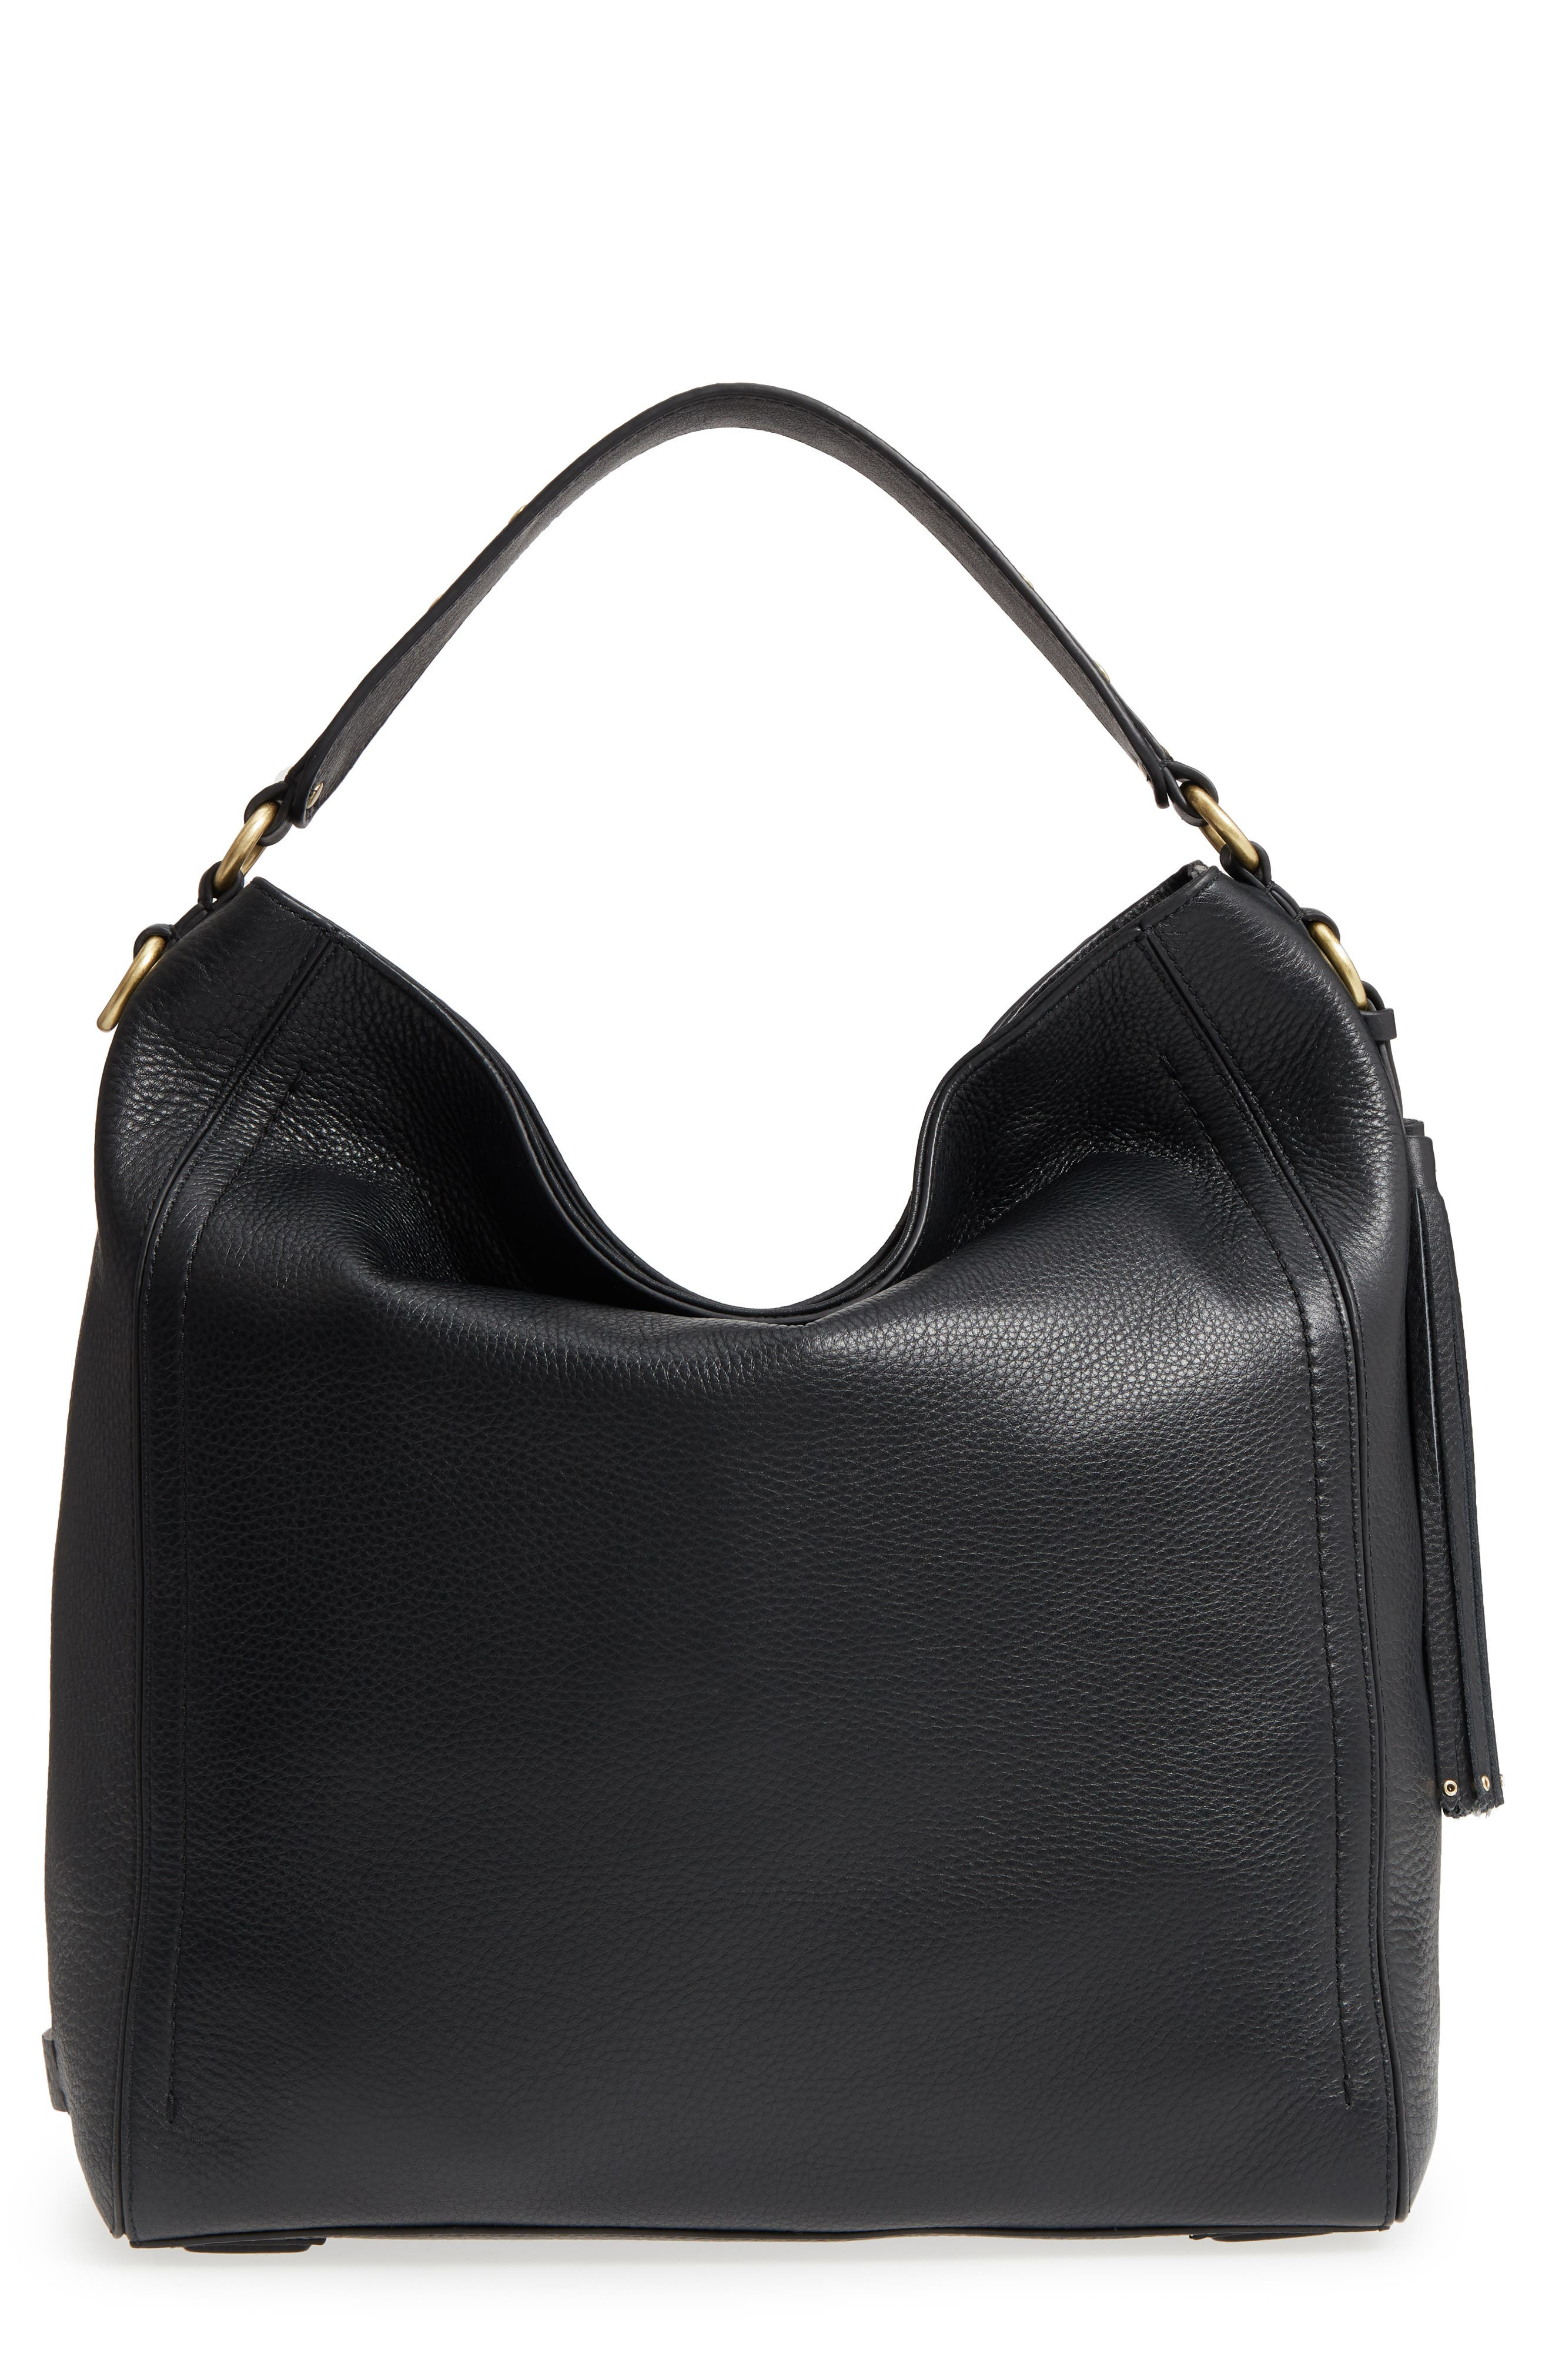 Cassidy RFID Pebbled Leather Bucket Bag,                         Main,                         color, 001